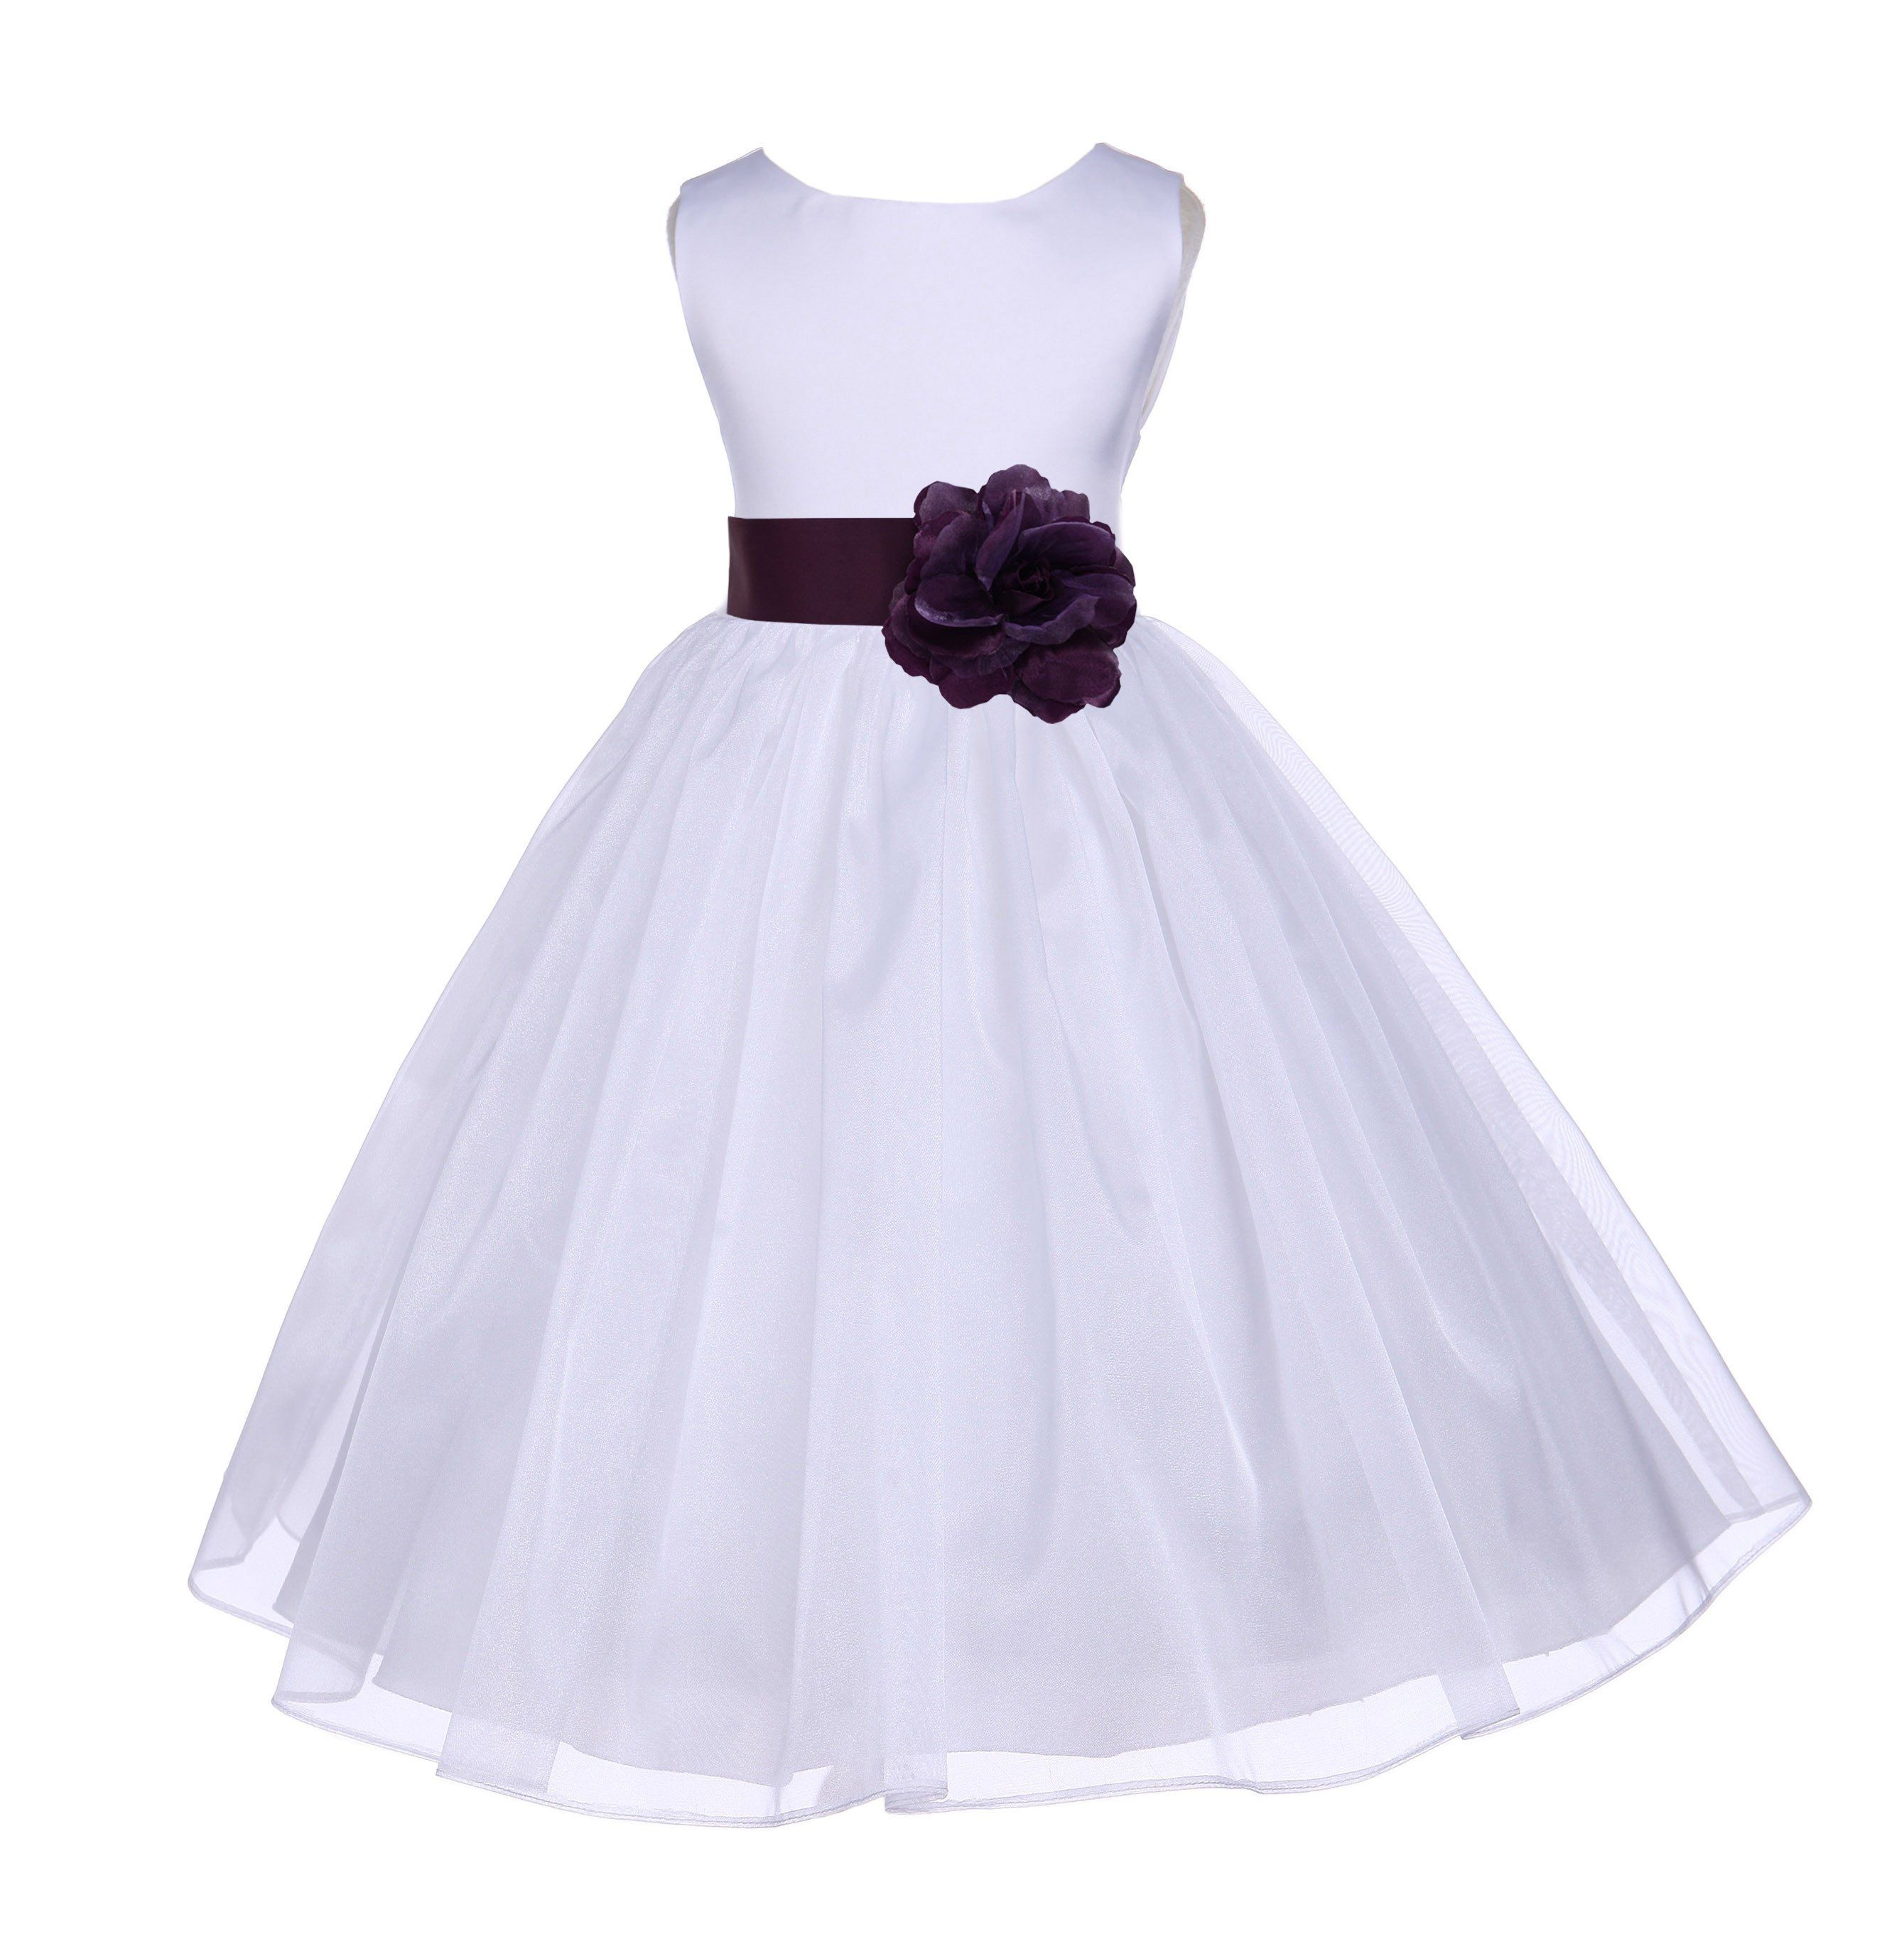 Petticoat for wedding dress  White Organza Flower Girl Dress Receptions Wedding Bridal Beauty